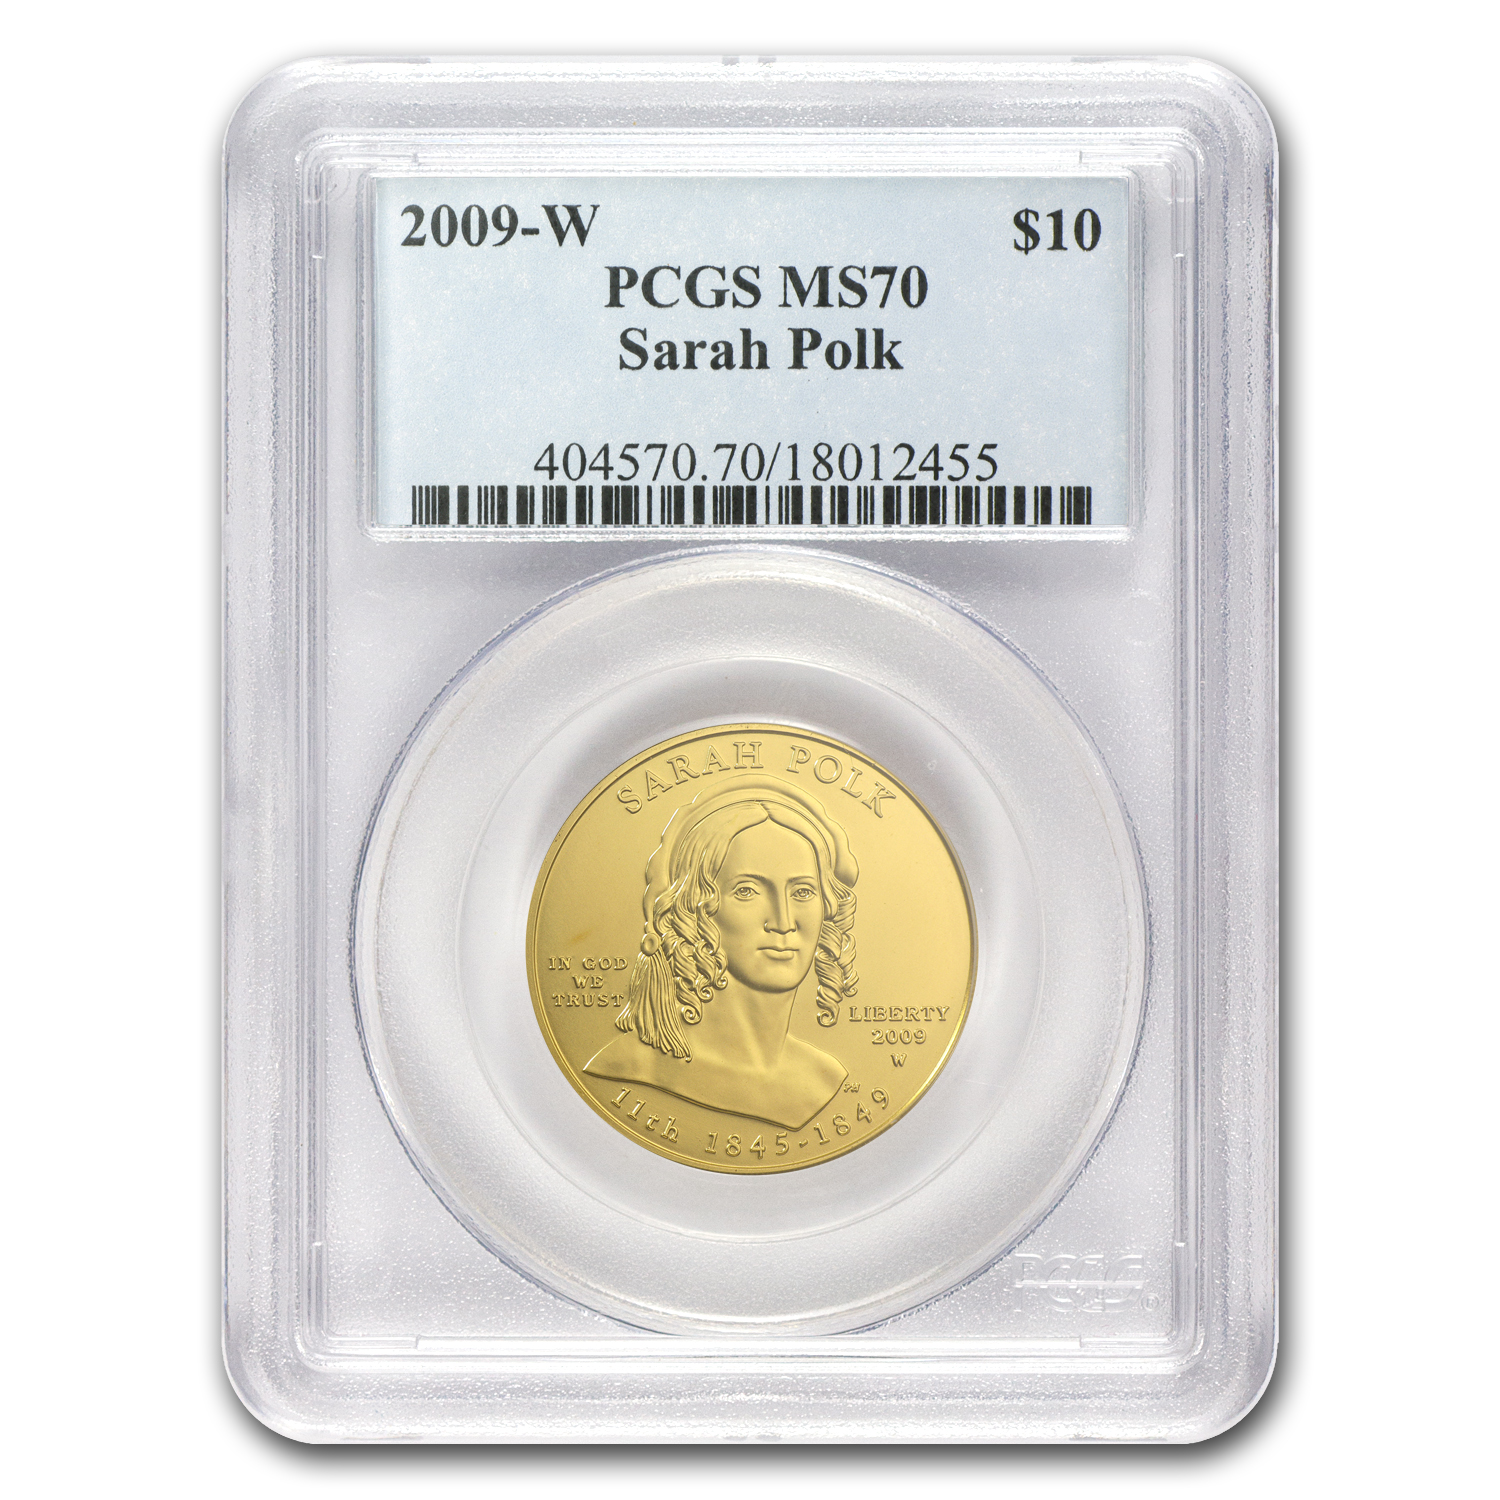 2009-W 1/2 oz Gold Sarah Polk MS-70 PCGS (First Strike)